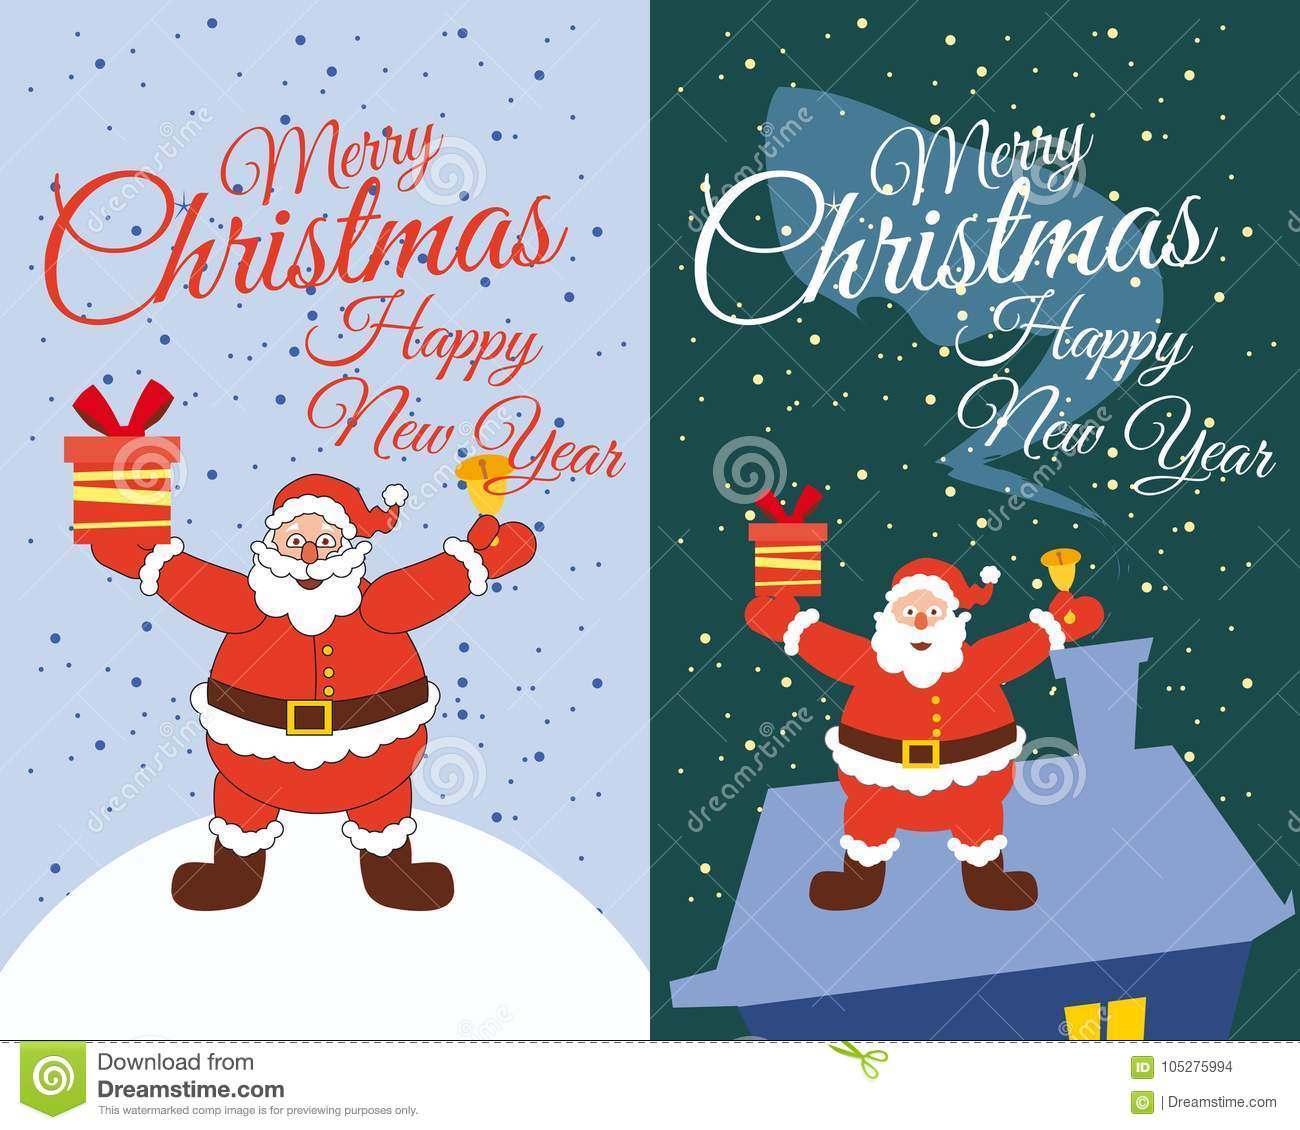 vector merry christmas and happy new year greeting card set with cute santa claus and gifts